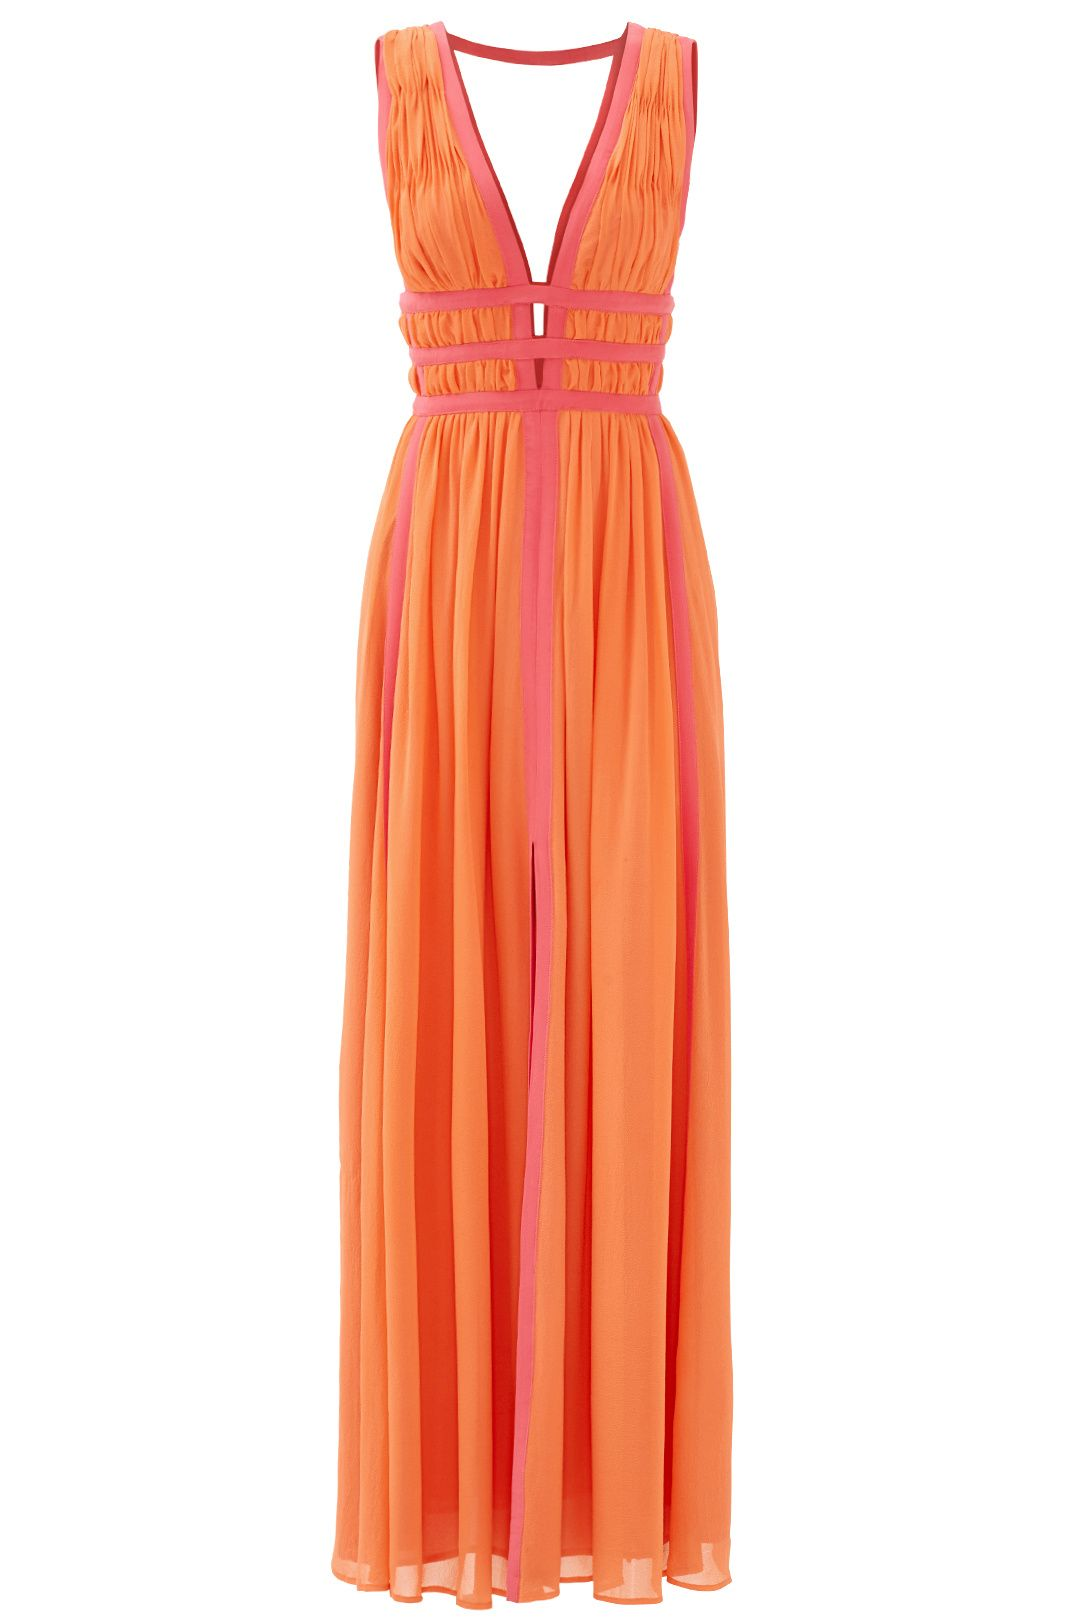 6b3a4dc5ed Rent Sunset Pink Gladiator Gown by Nicole Miller for  85 only at Rent the  Runway.